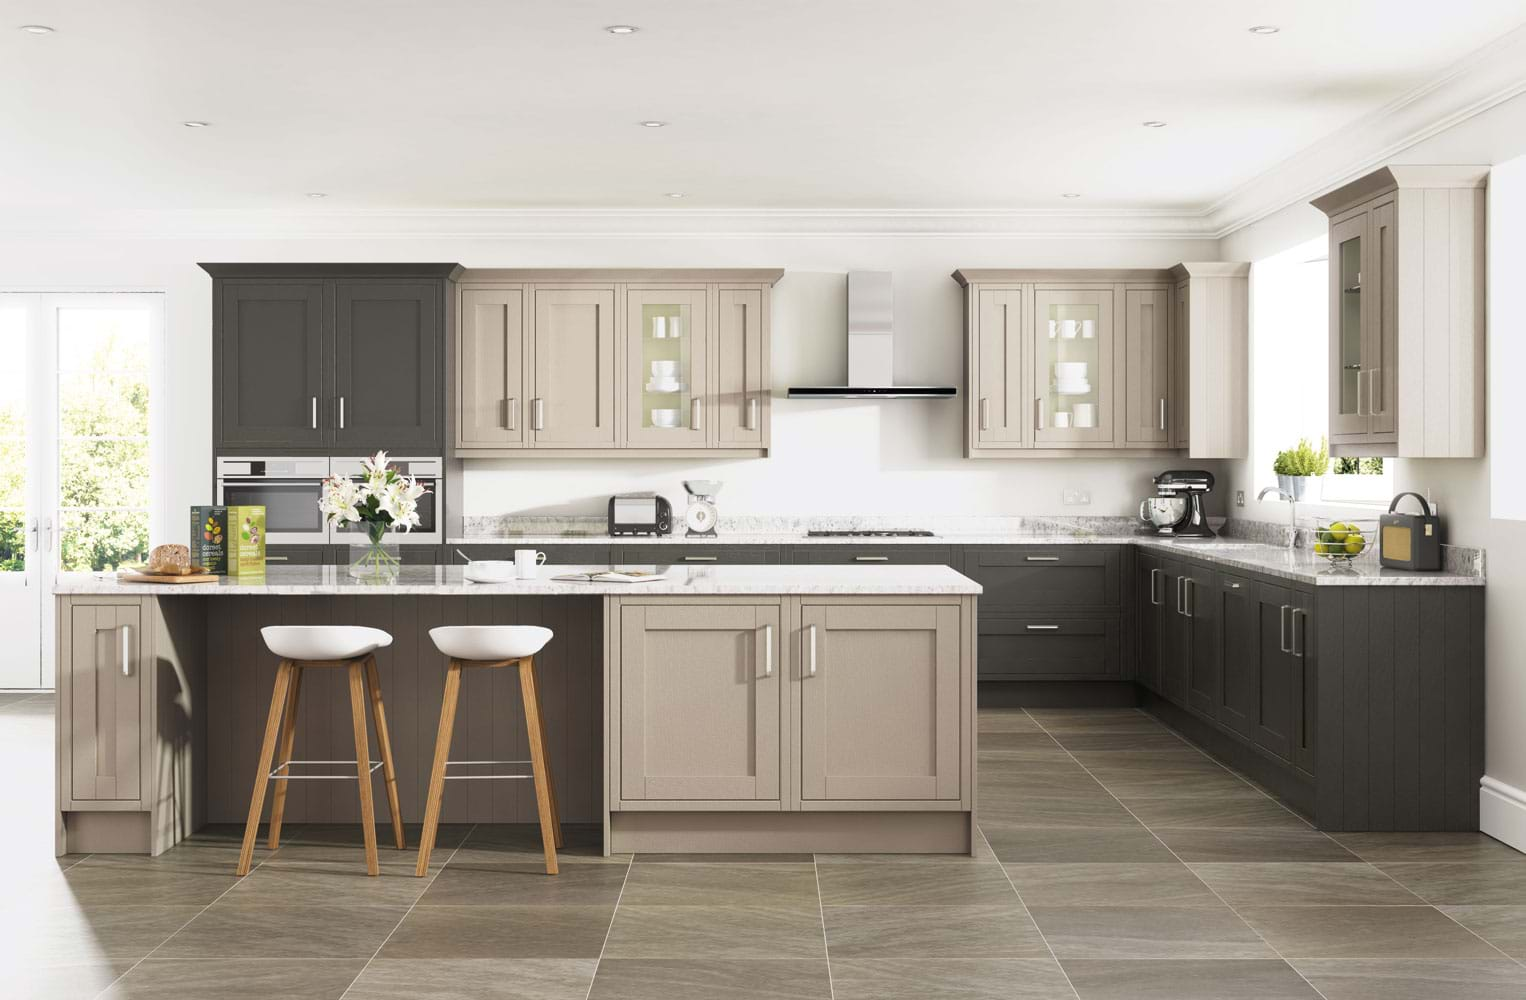 Casa Fitted Kitchens Exclusive Kitchens Leekes